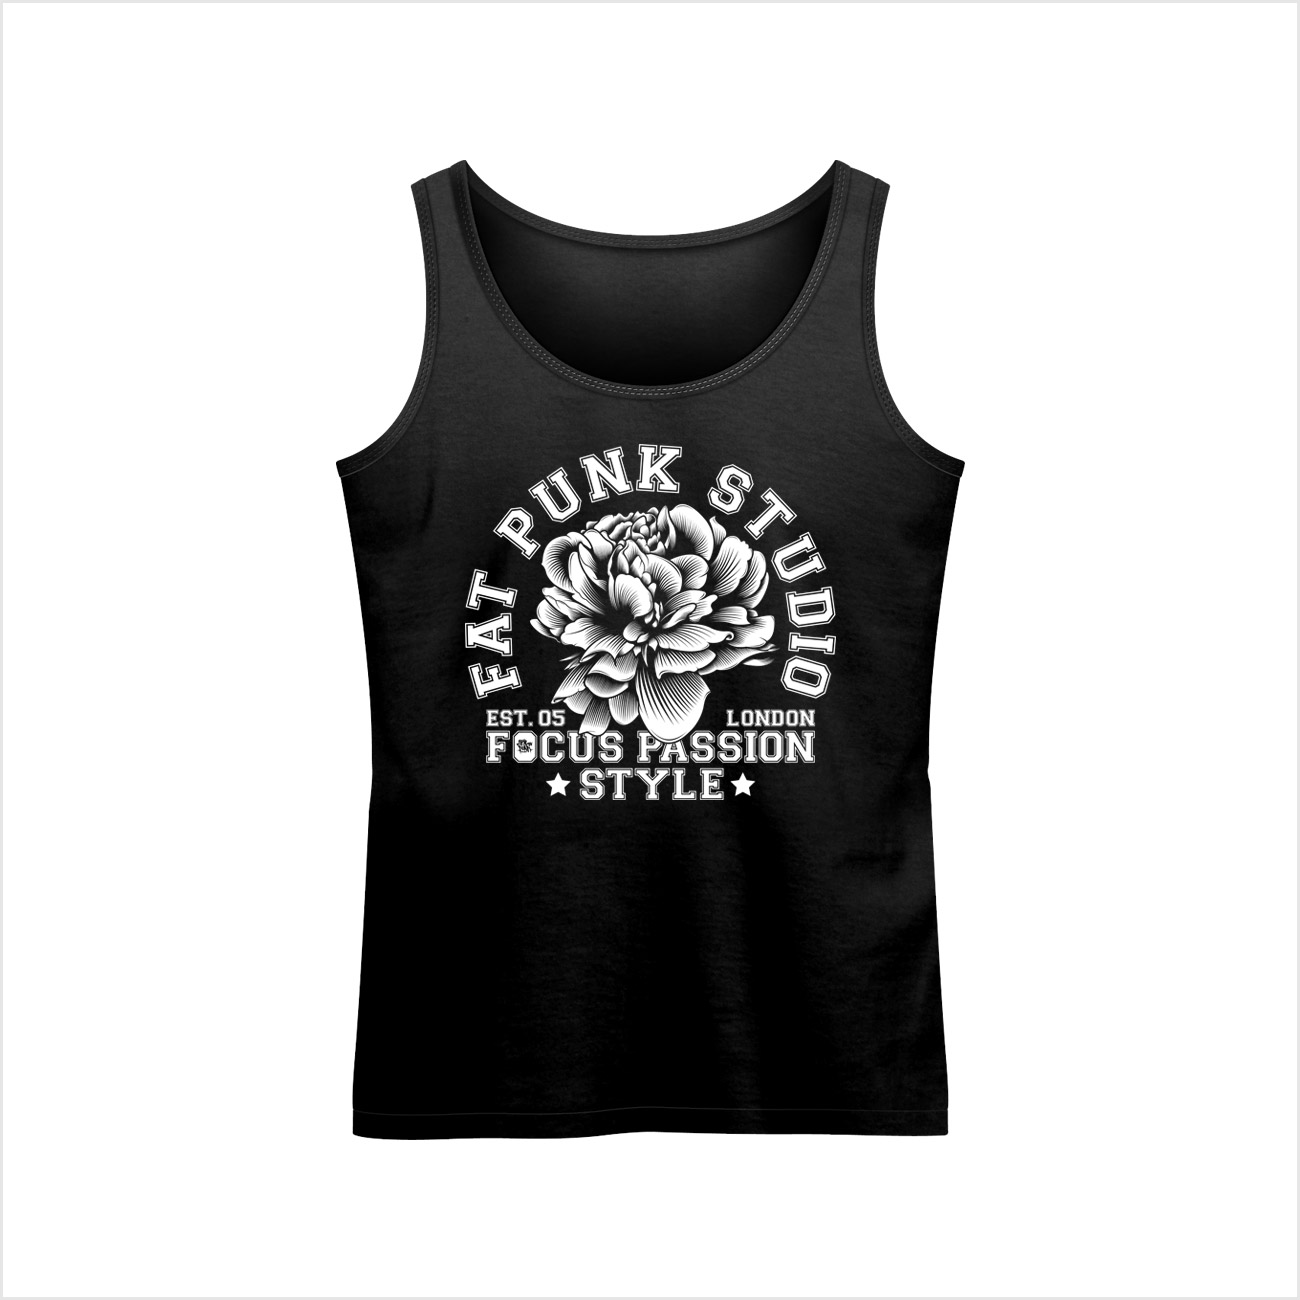 fat-punk-studio-varsity-vest-top-black-01